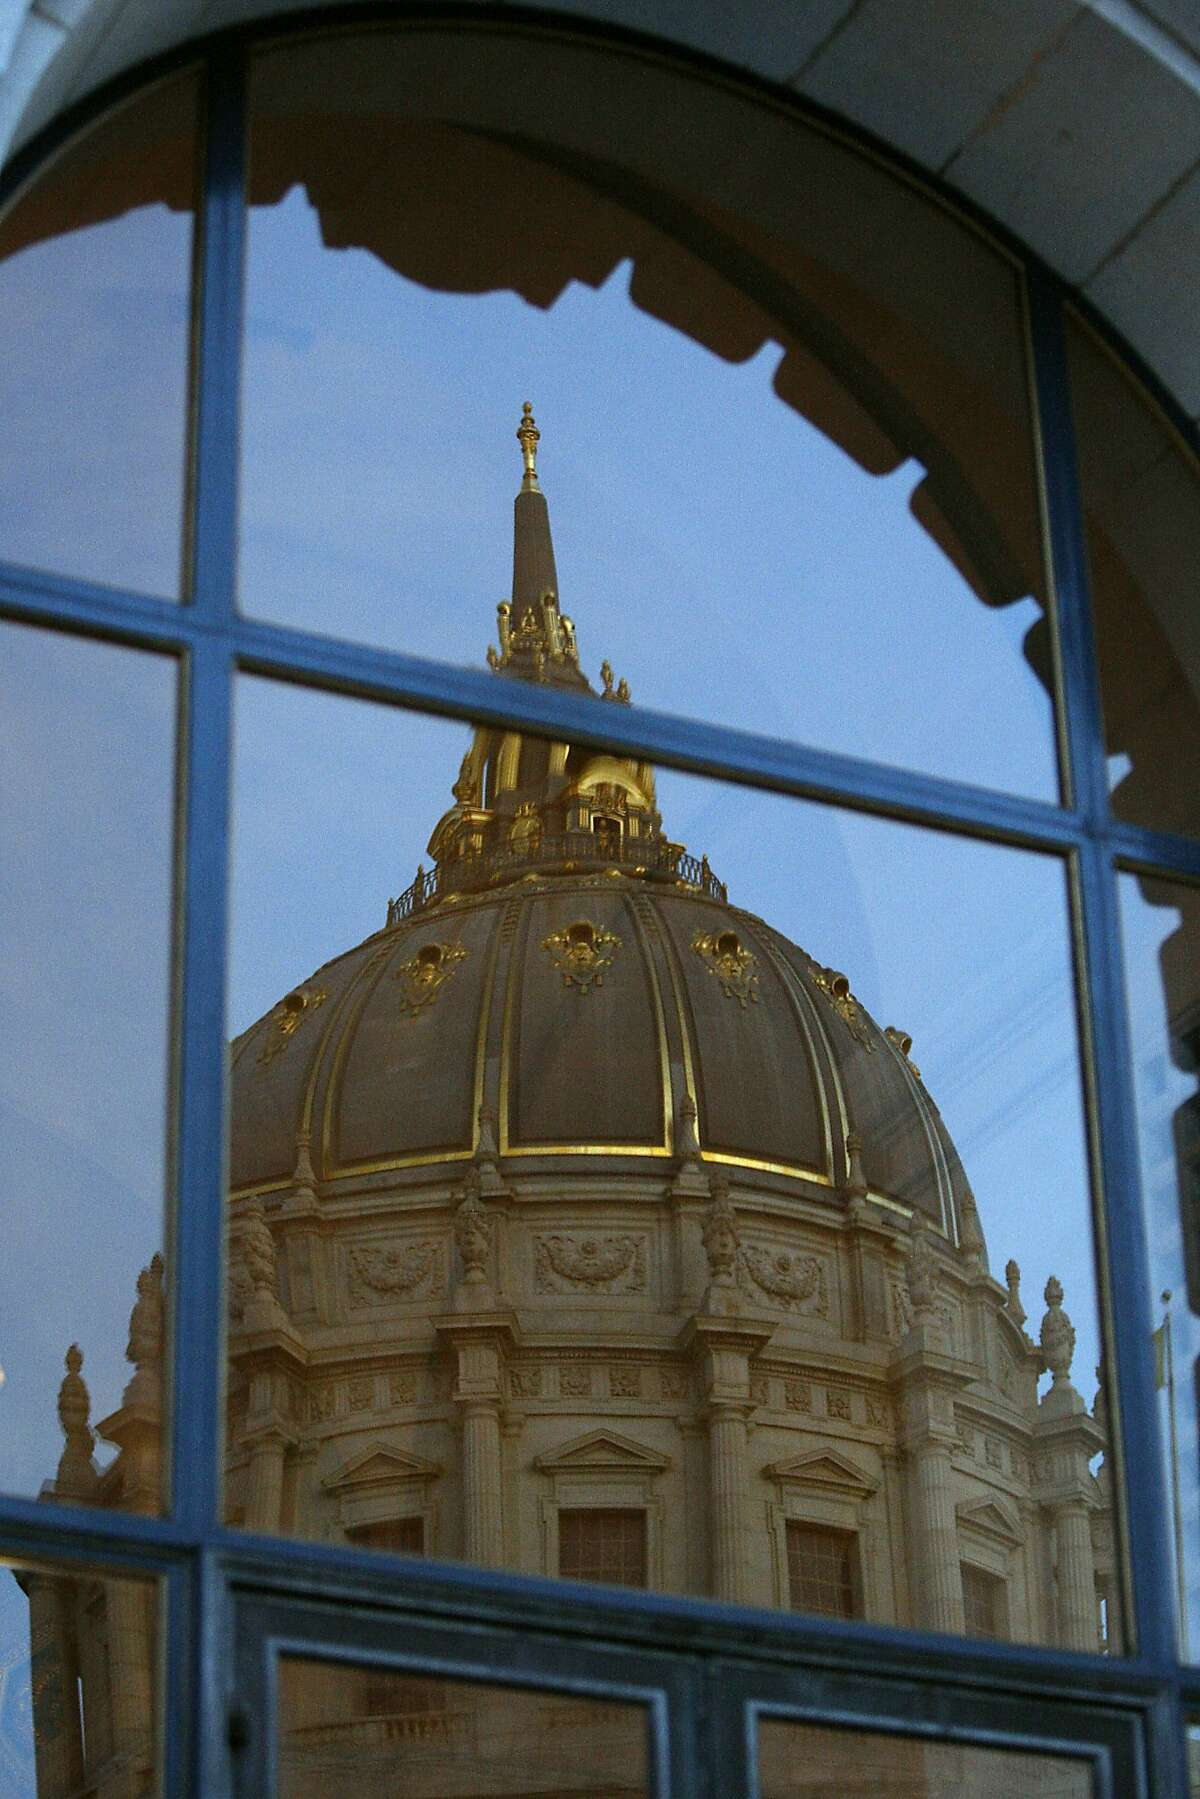 San Francisco City Hall's imposing sandstone and marble dome is modeled after St. Peter's Basilica in Rome and is higher than the U.S. Capitol in Washington.